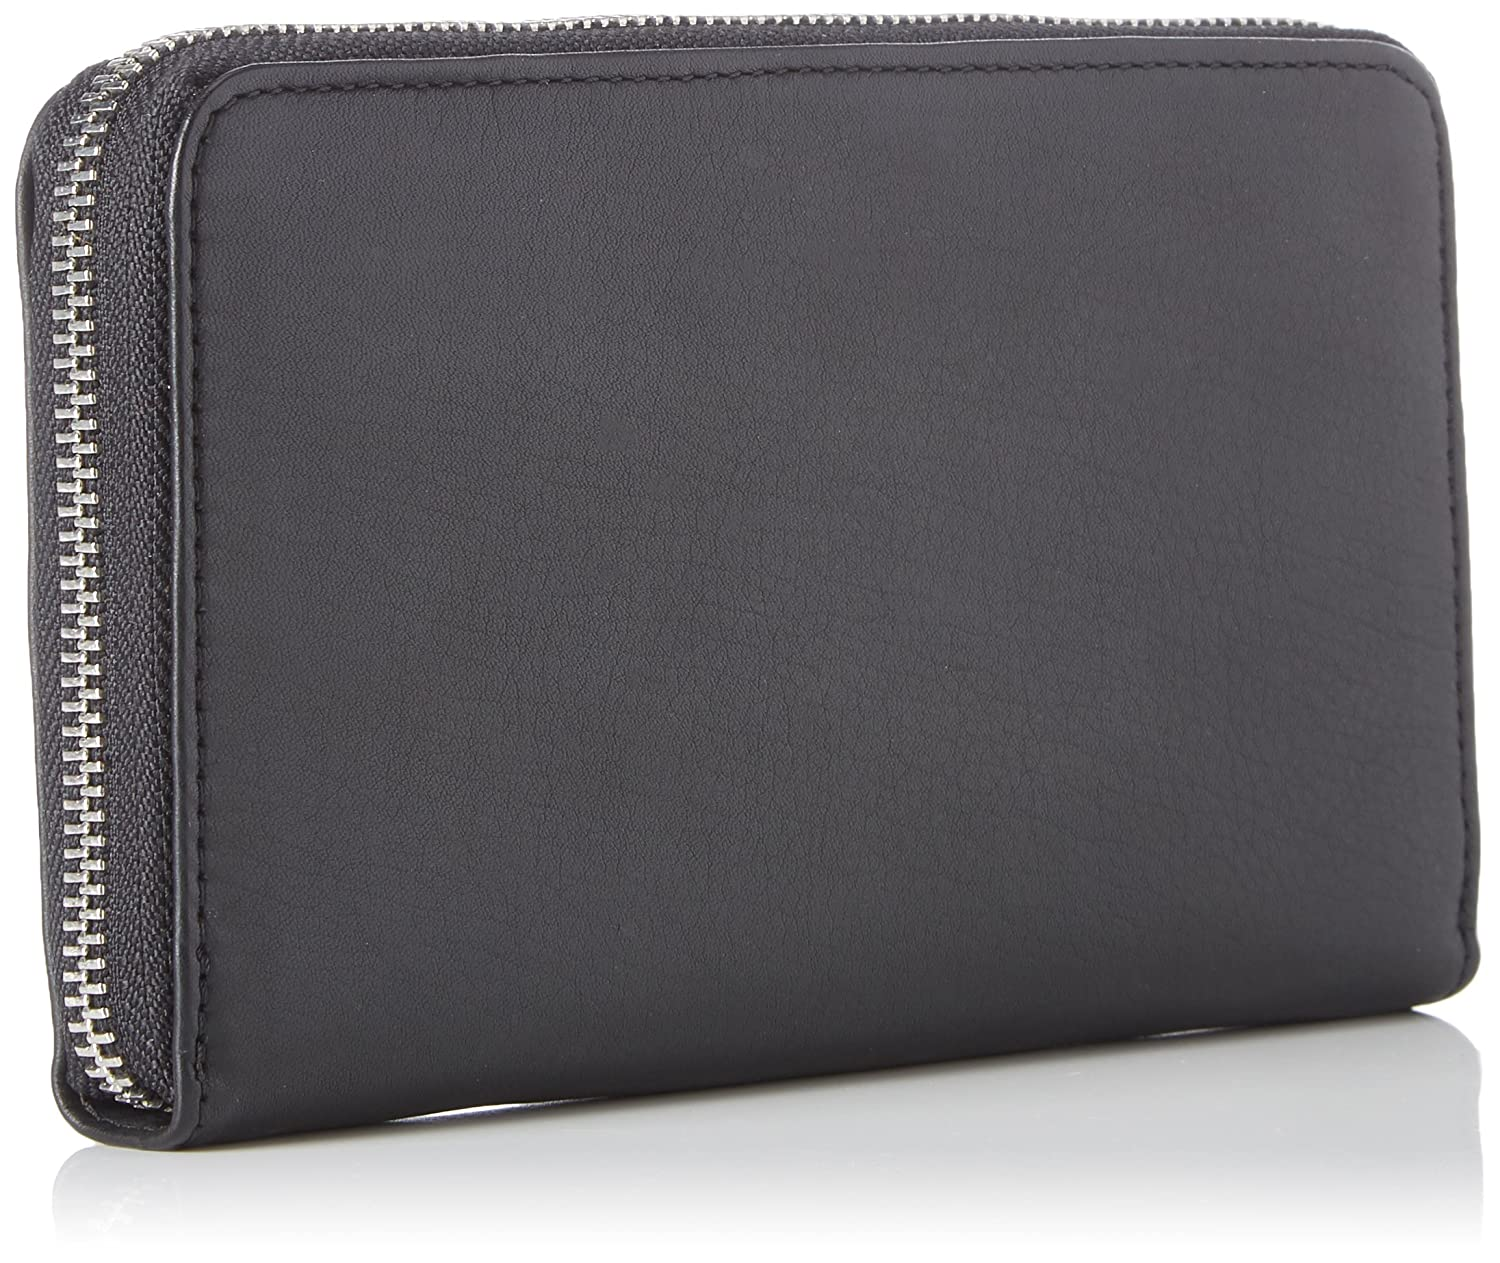 Fw5171.000.a3127, Womens Wallet, Black, 2.5x10.5x19 cm (B x H T) Replay